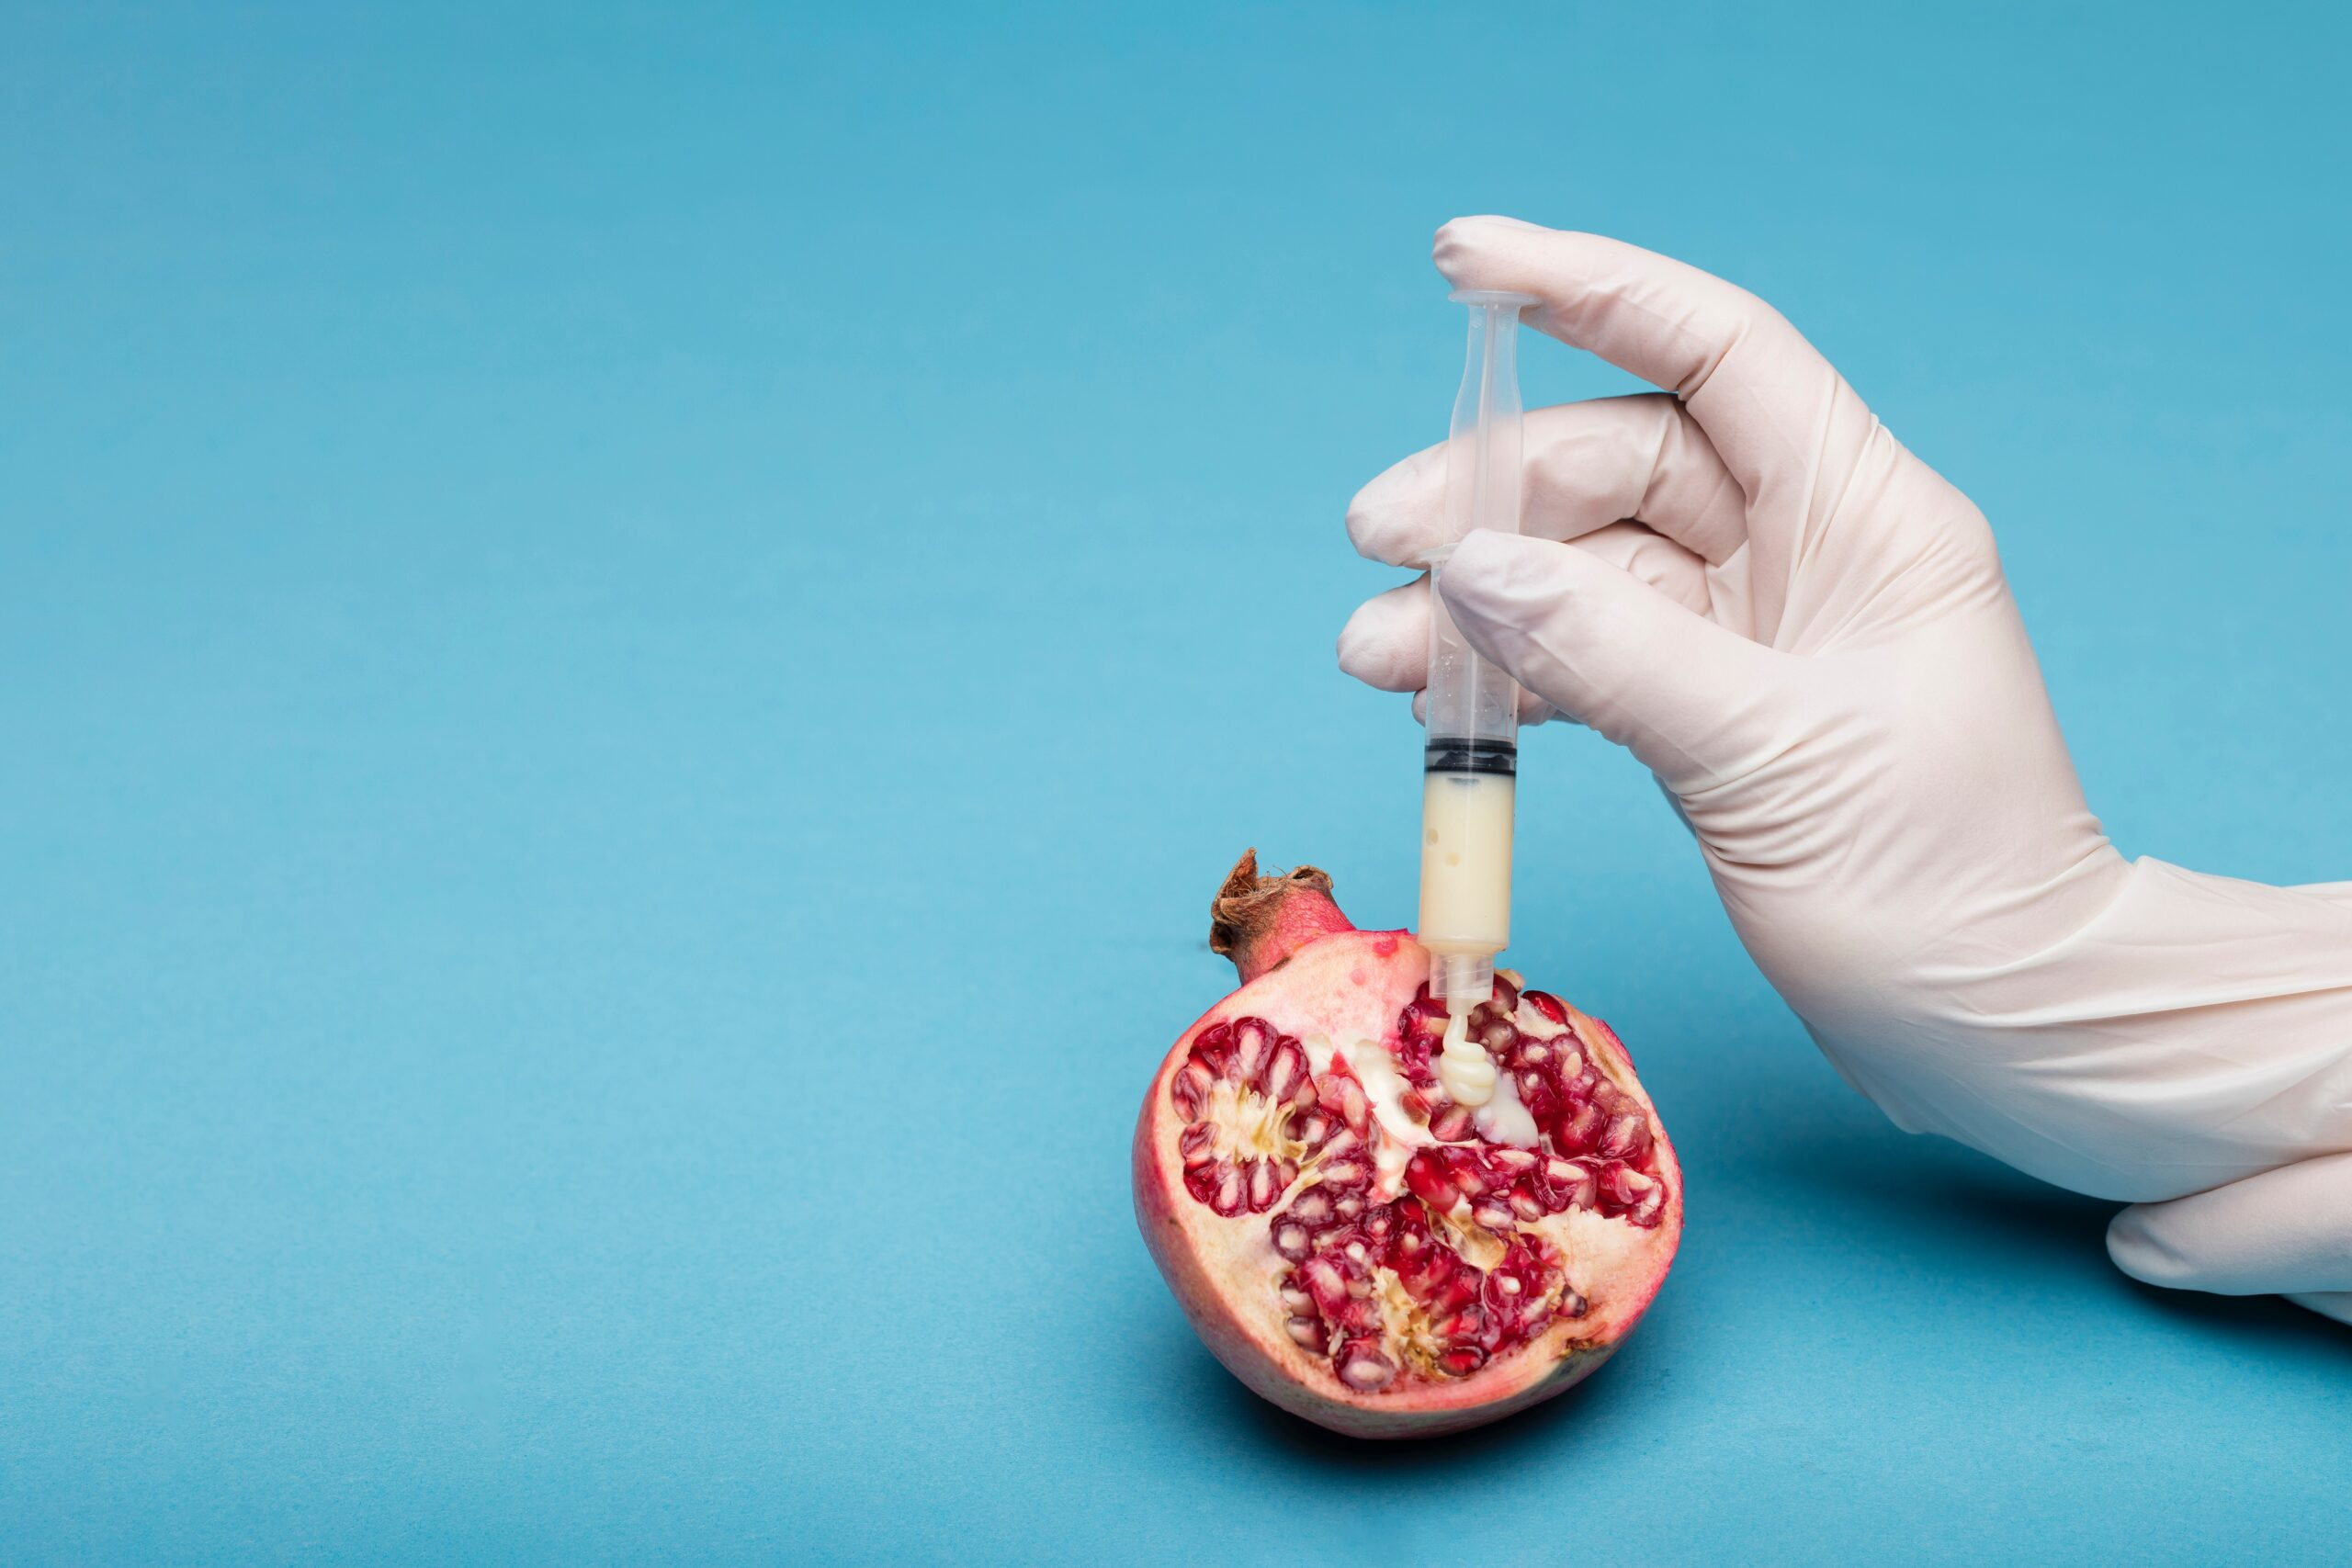 Pomegranate with syringe - Surrogacy